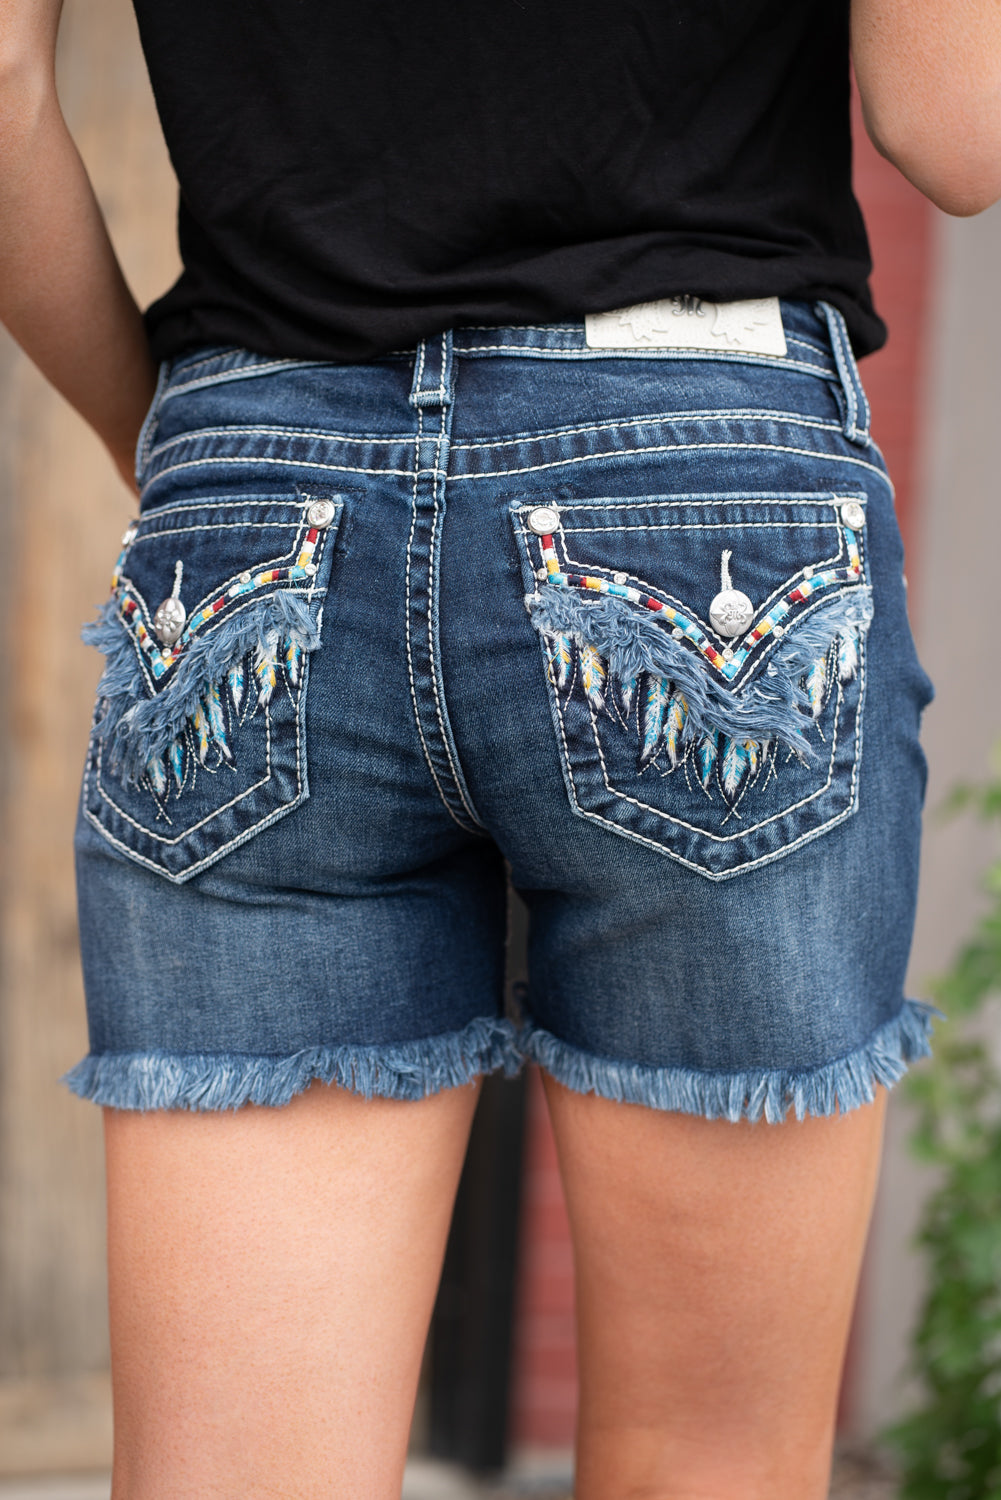 "Miss Me Jeans Collection: Summer 2020 Name: Fringe Feather Color: Dark Wash Cut: Shorts, 3"" Inseam Rise: Mid Rise, 8.75"" Front Rise 93% Cotton, 5% Polyester, 2% Elastane Stitching: Classic Fly: Zipper Style #: M3593H"